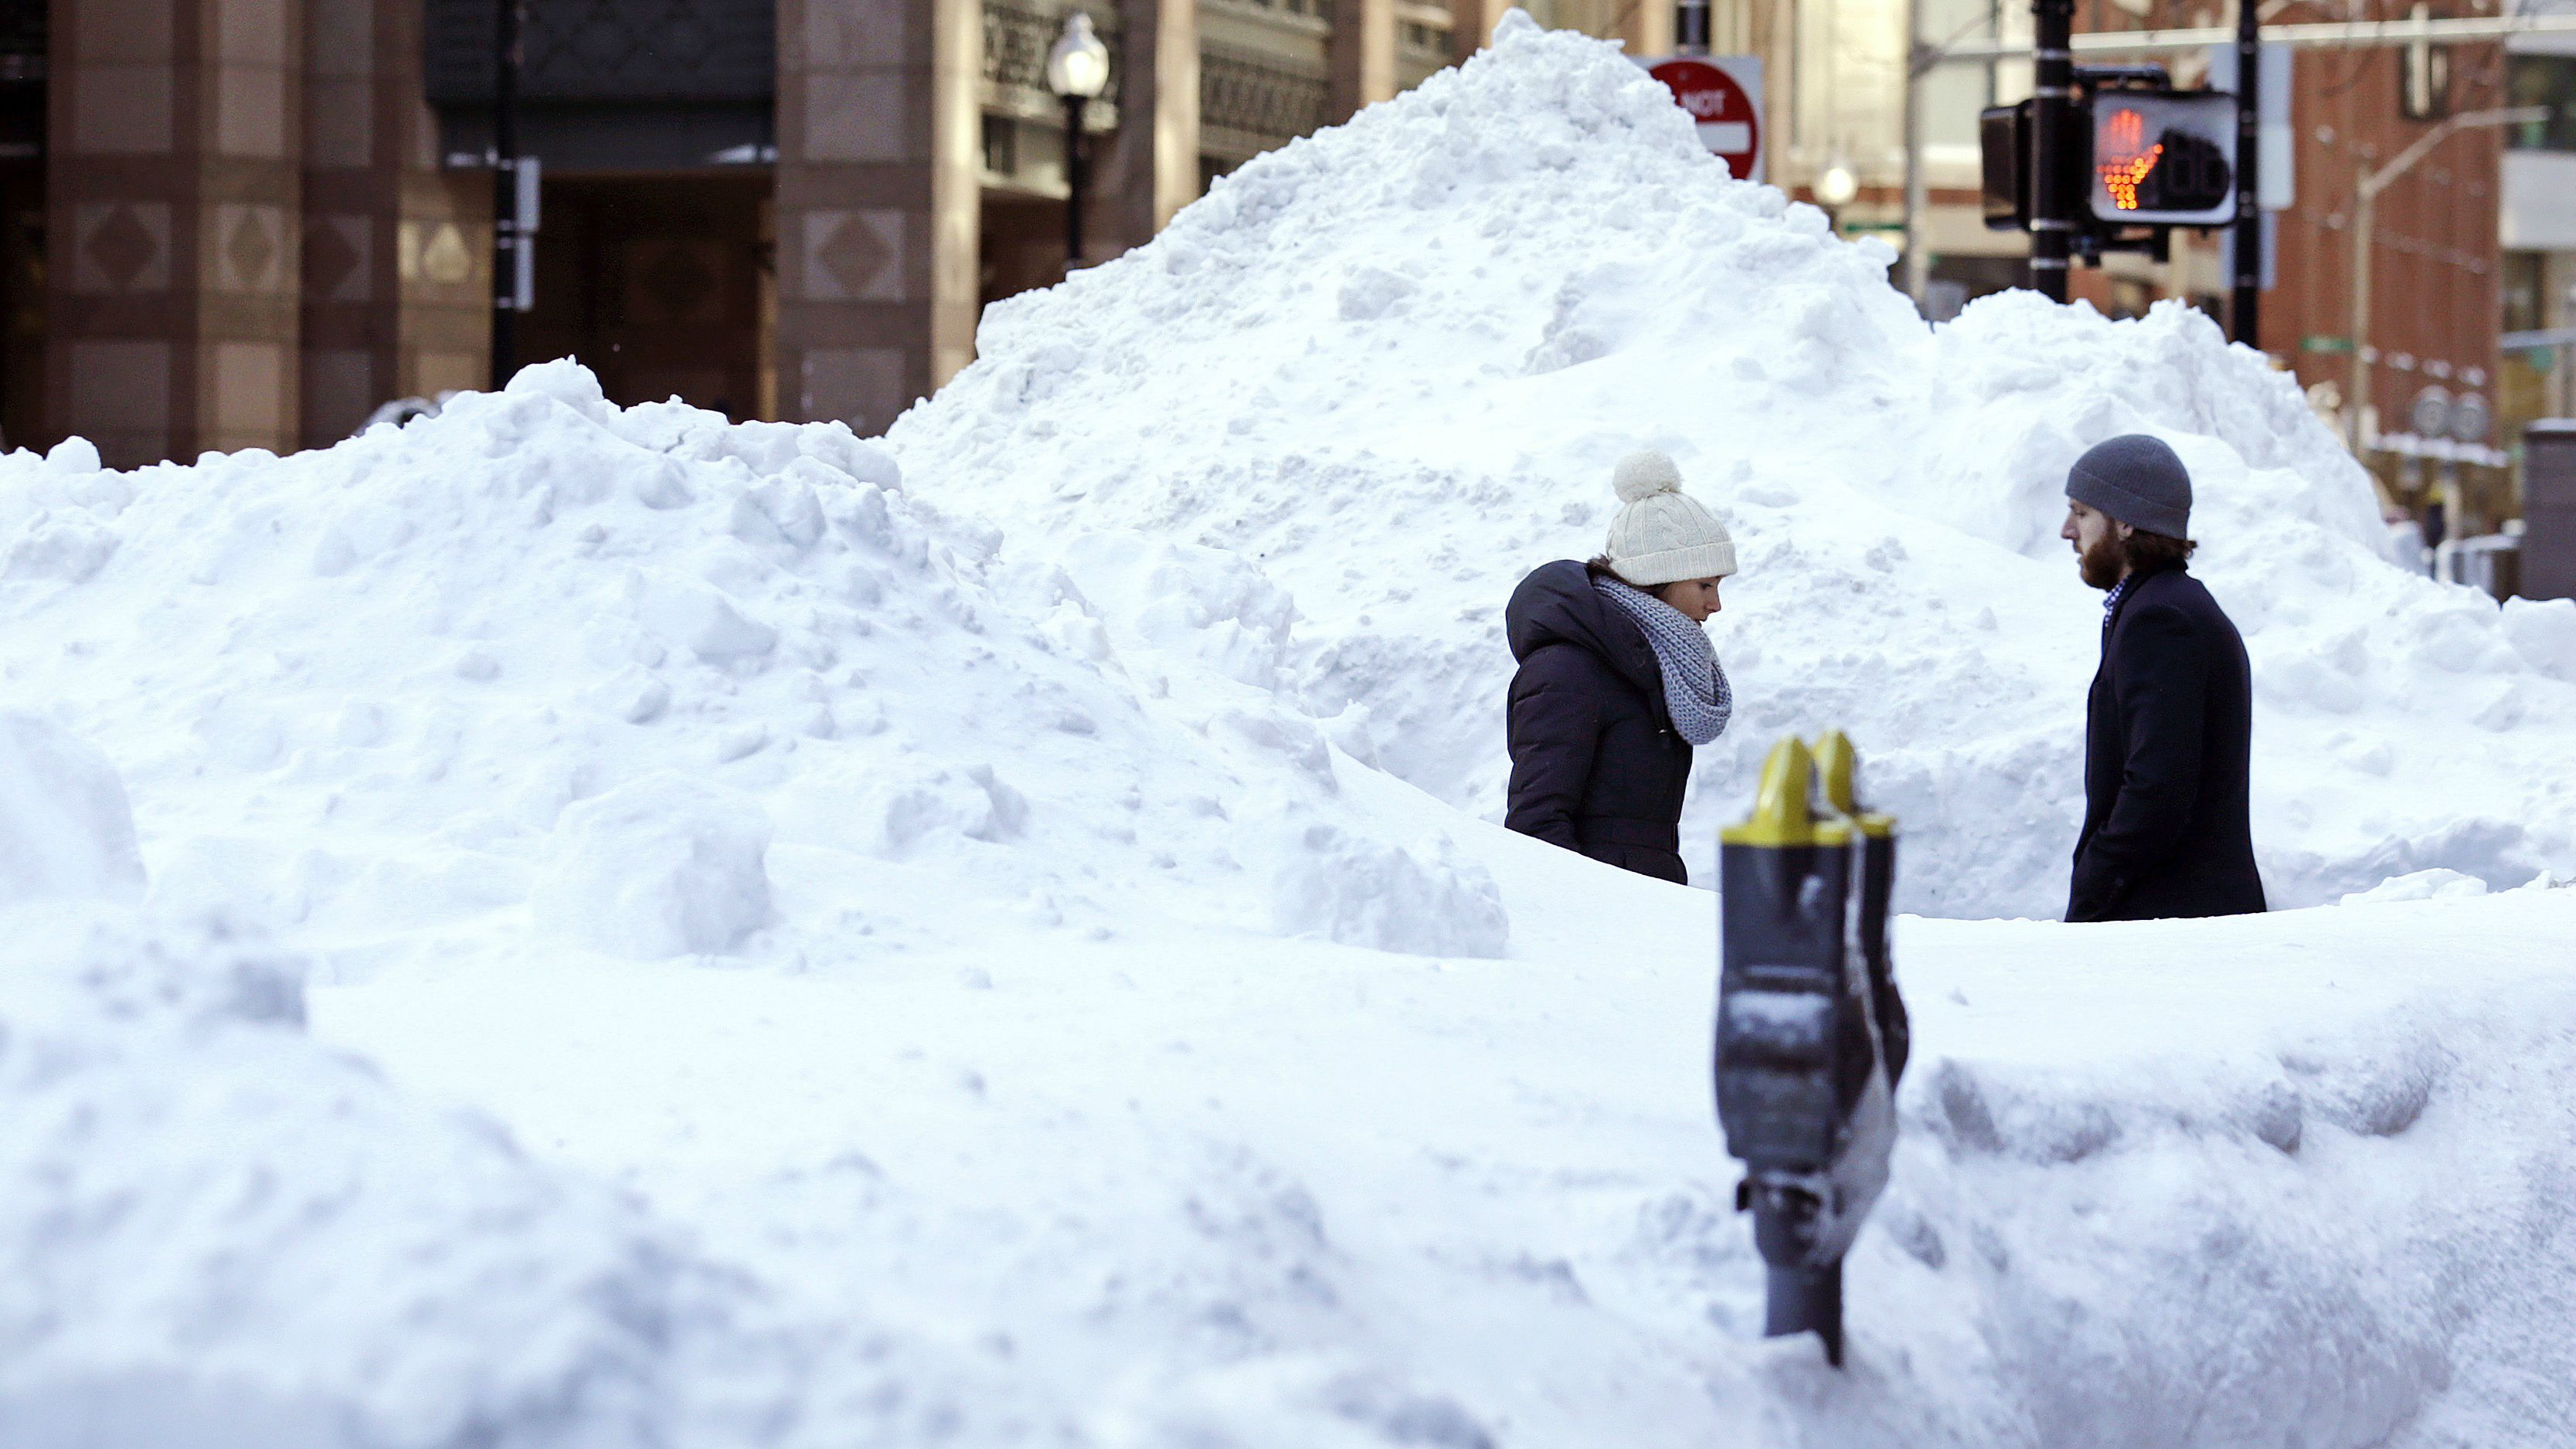 Pedestrians maneuver around huge snow piles as they walk through the Financial District of Boston, Tuesday, Feb. 3, 2015. The Boston area has received about 40 inches of snow in the past week. (AP Photo/Charles Krupa)